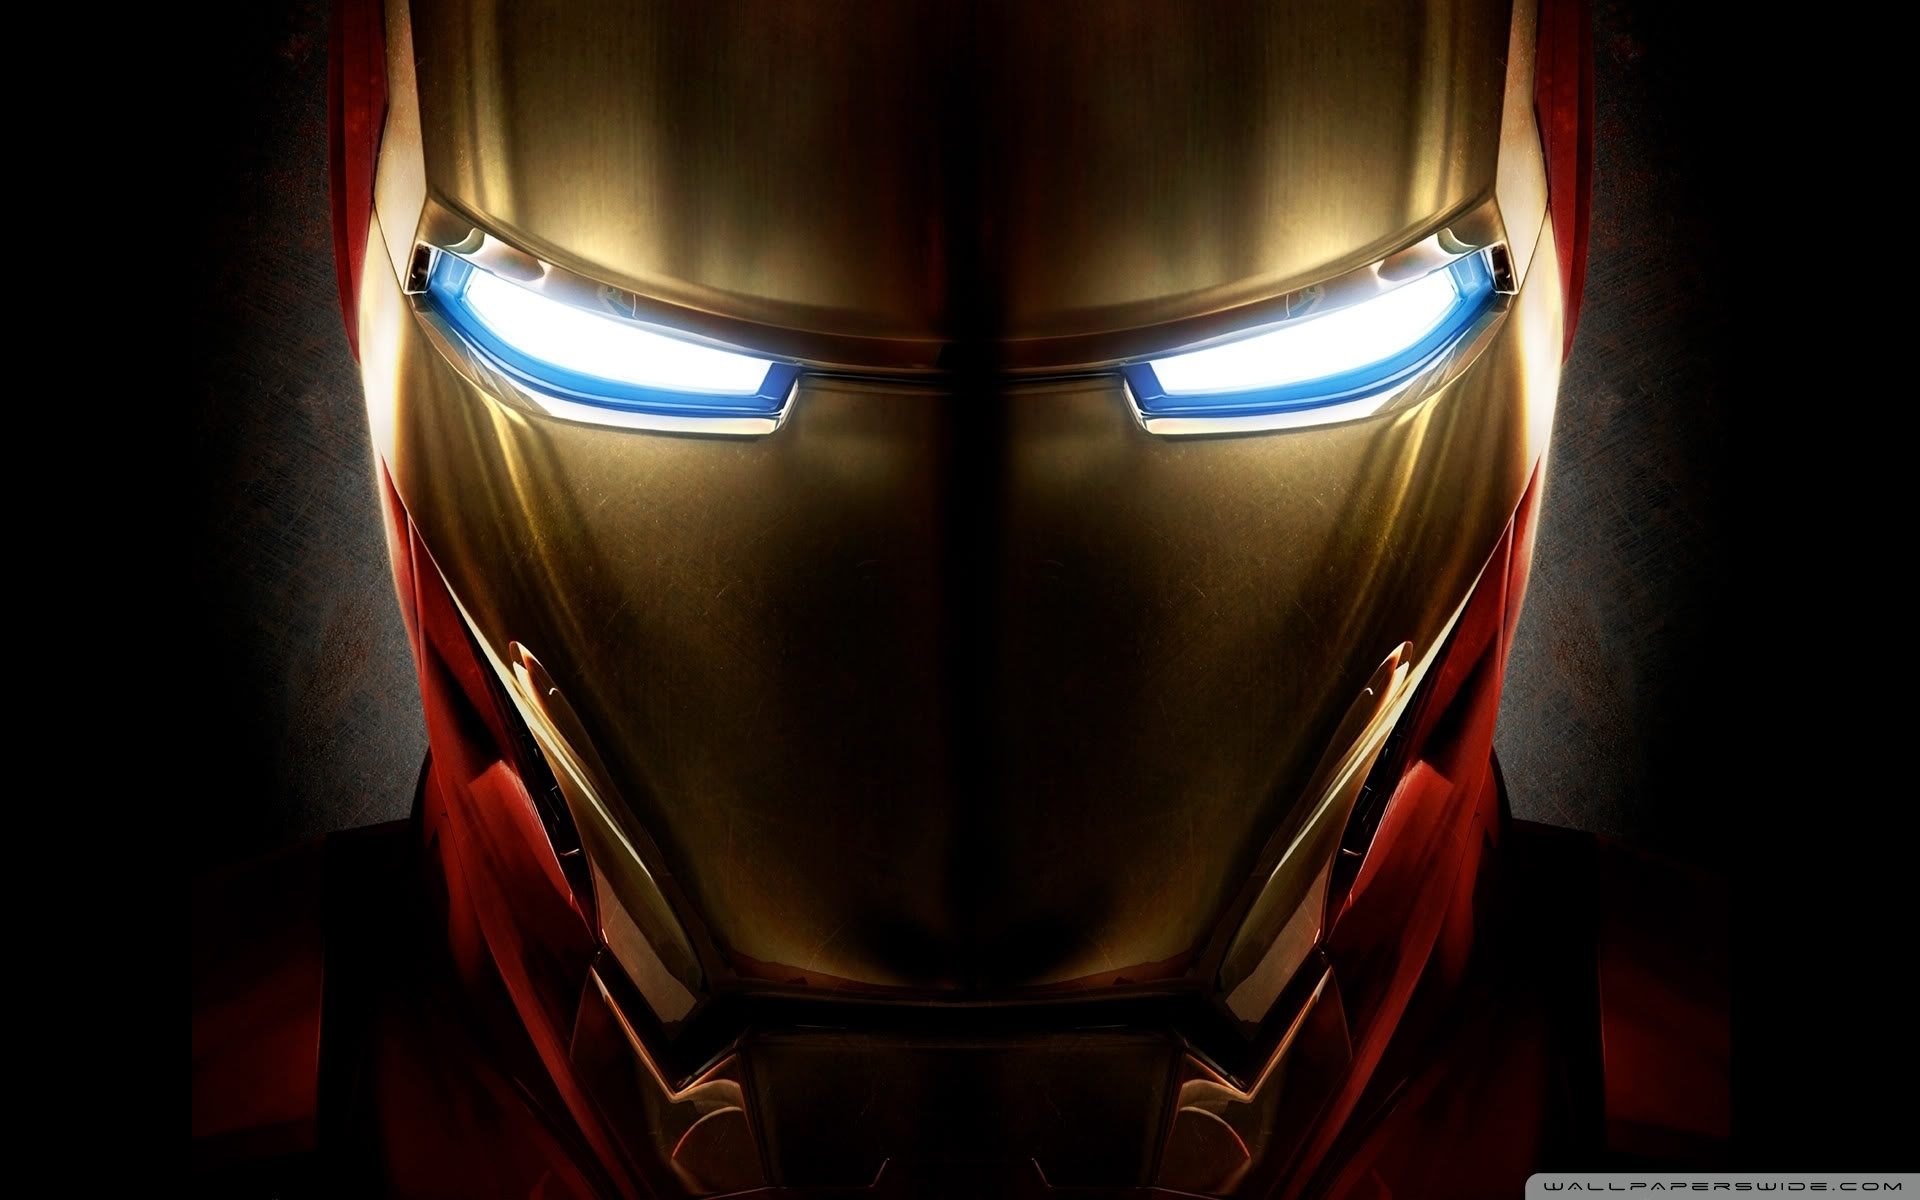 wallpaperswide ❤ iron man hd desktop wallpapers for 4k ultra hd